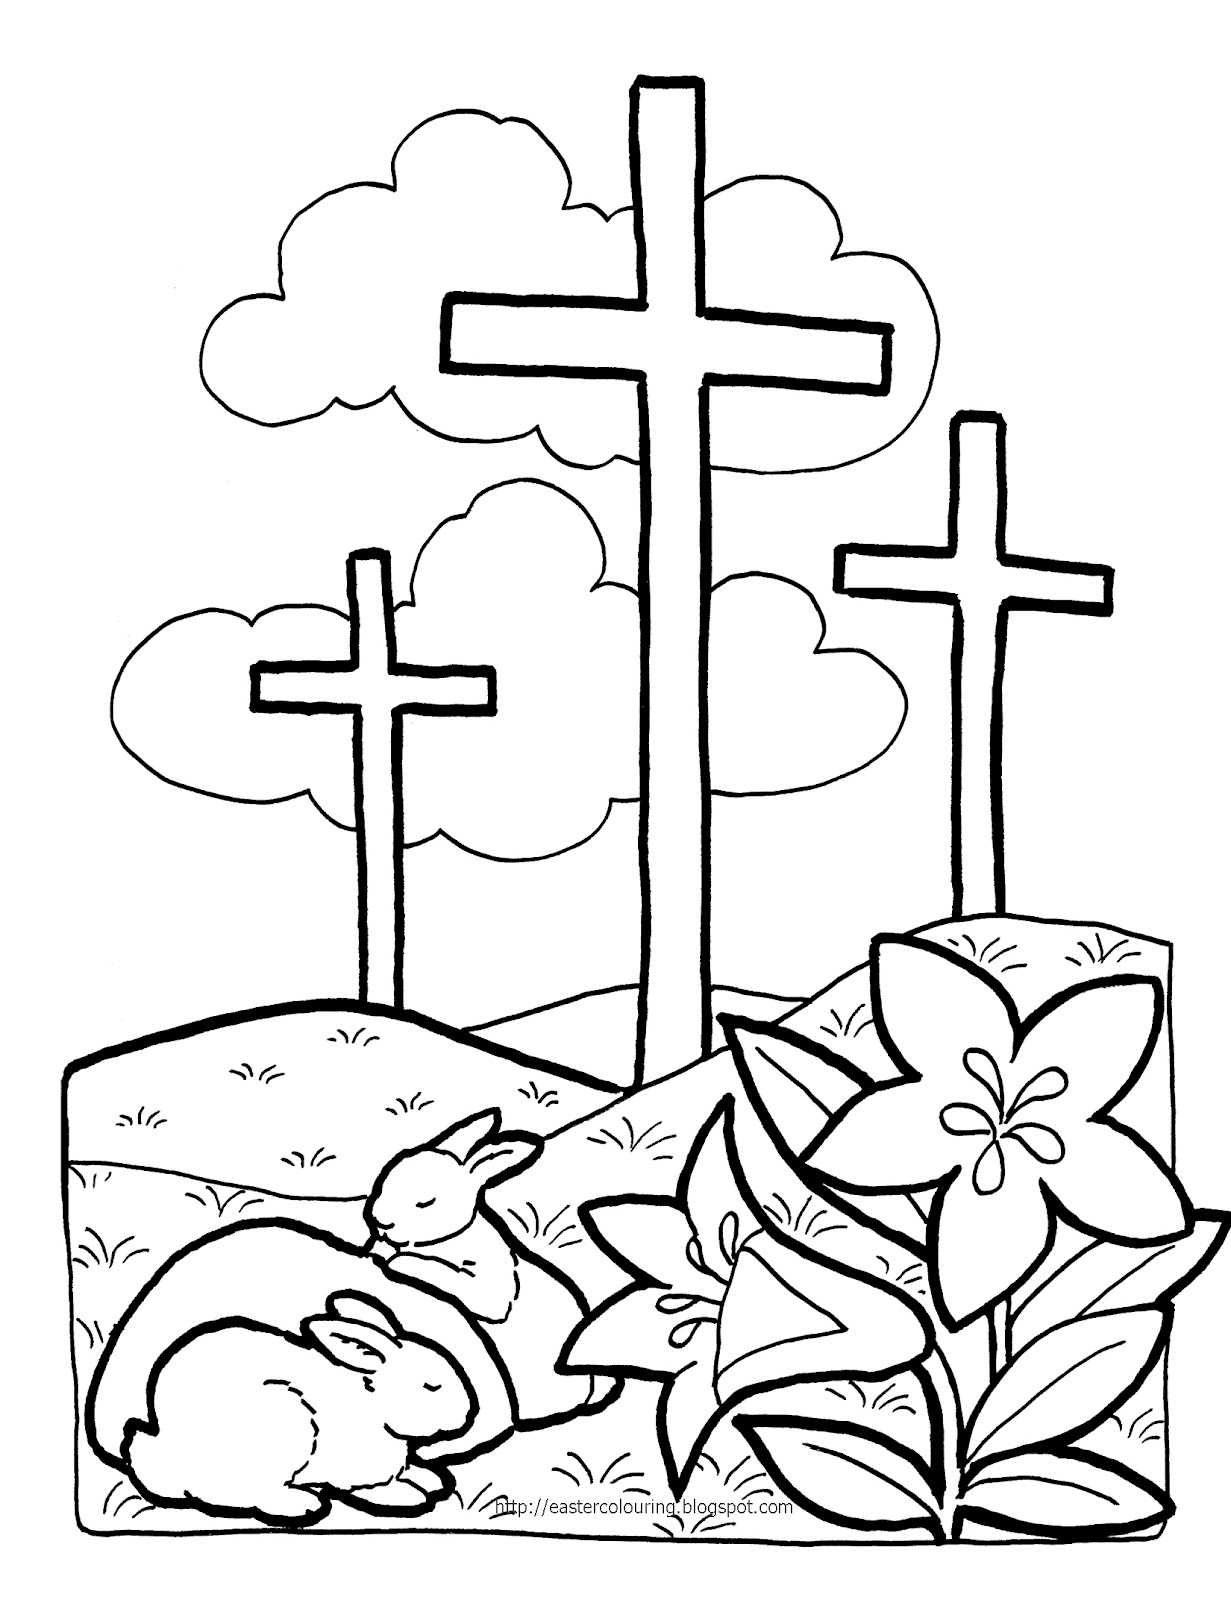 printable christian coloring pages - Christian Coloring Pages